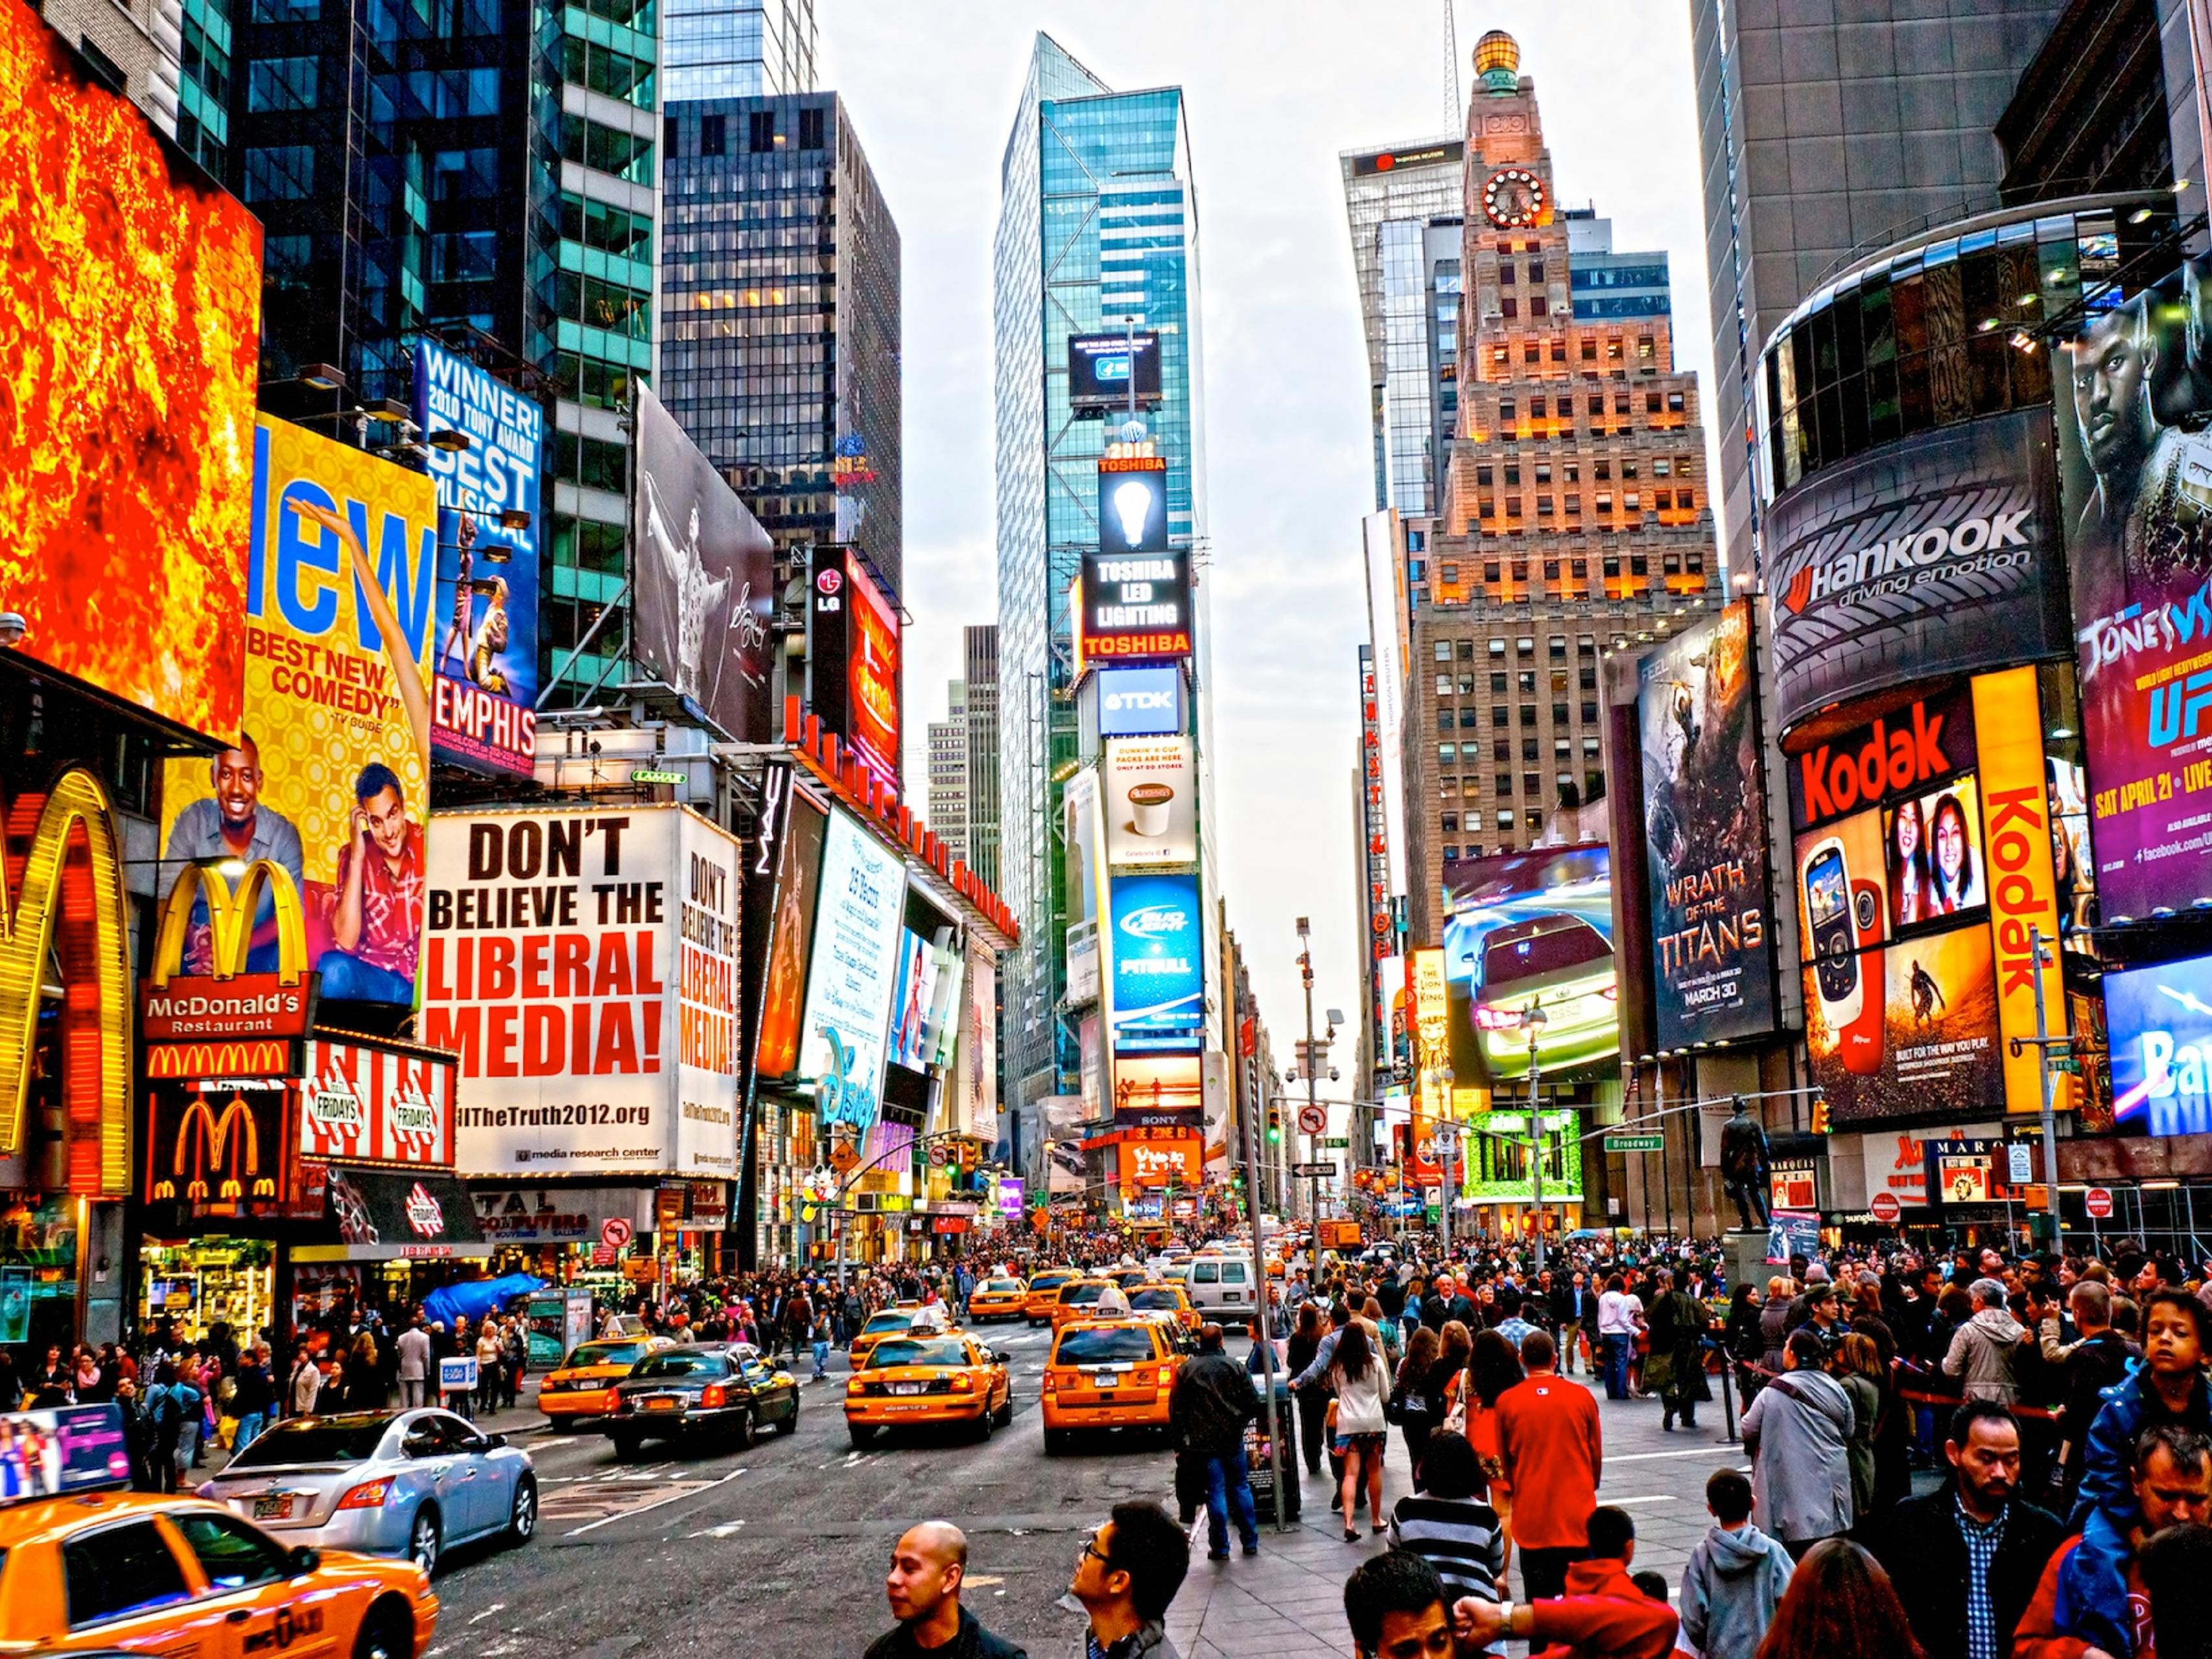 Must see attraction Times Square just few blocks away